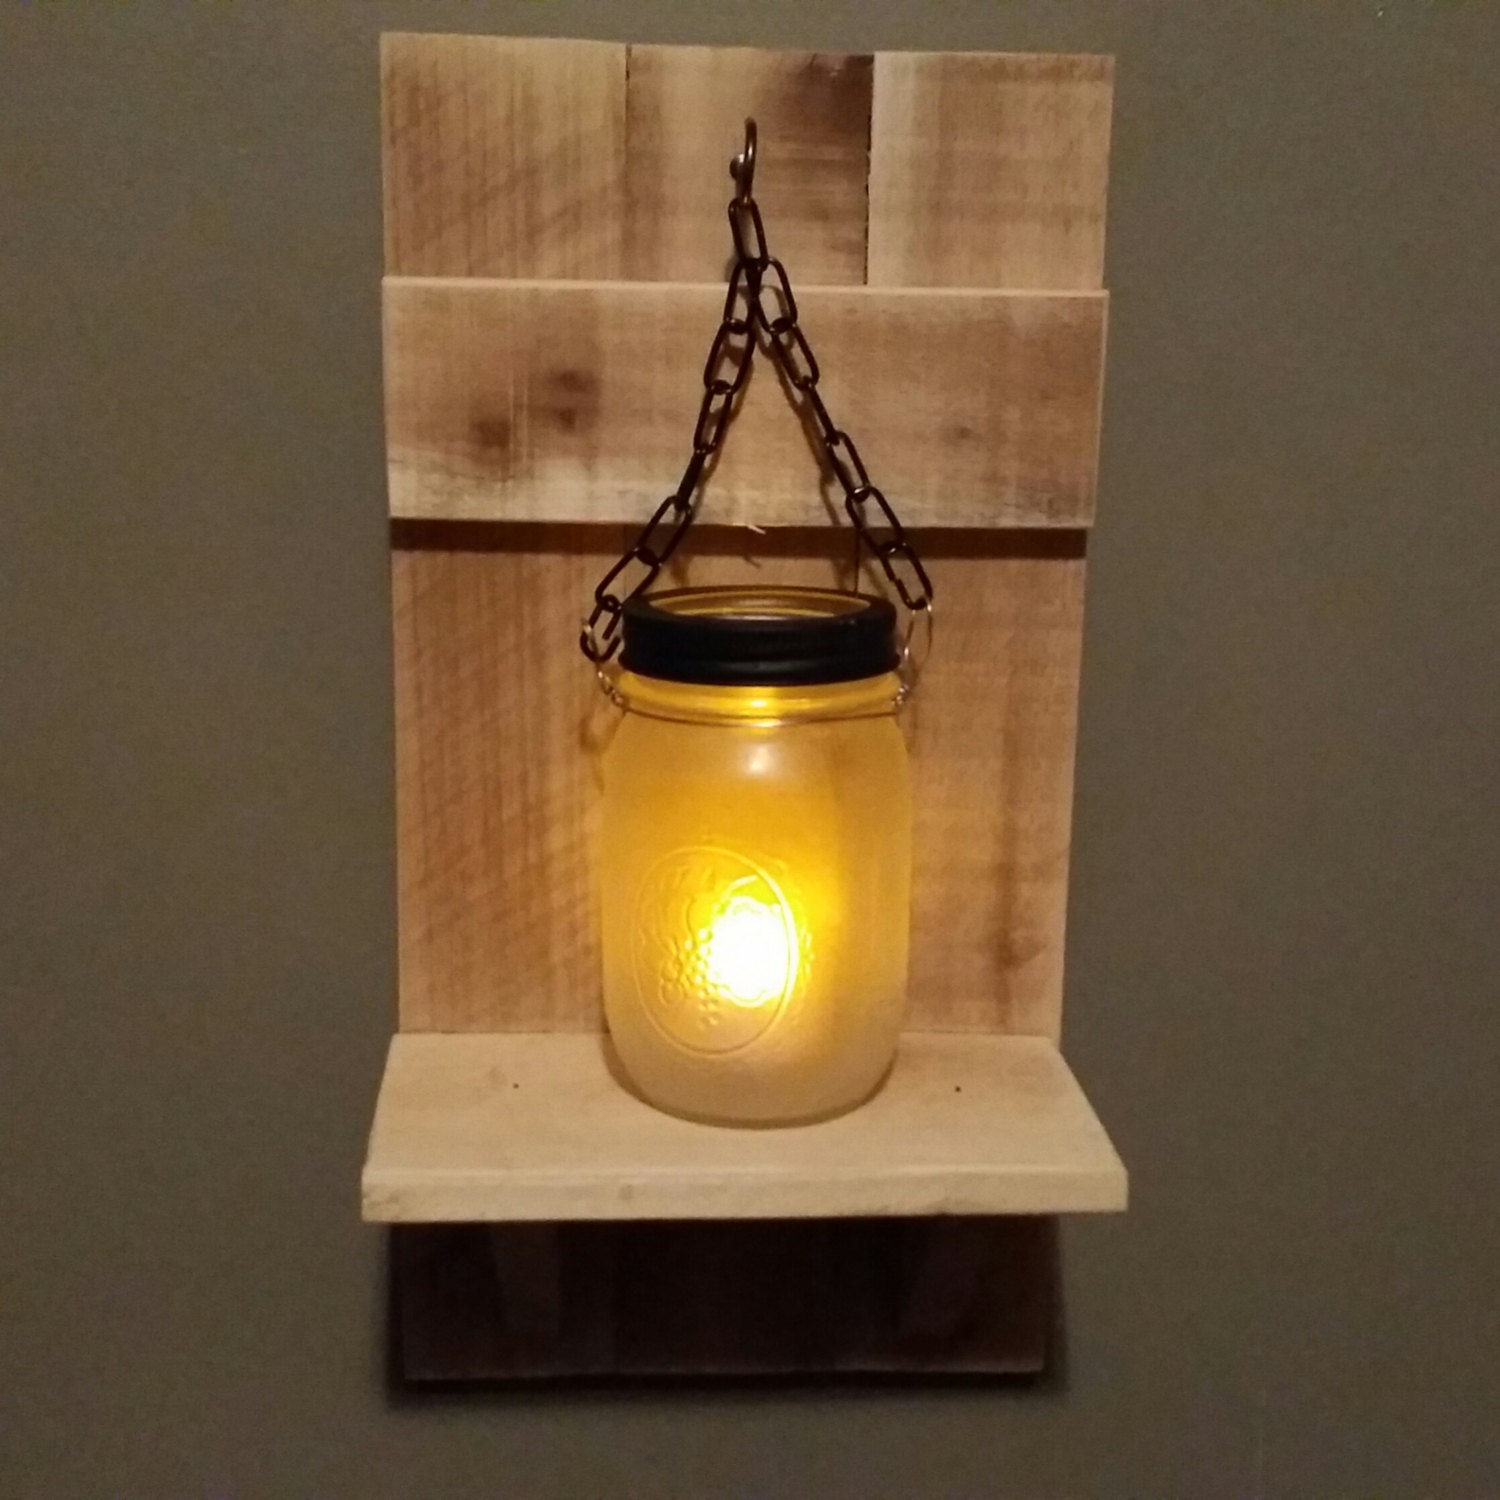 Country Wall Sconce Candle Holder : Mason jar Candle Holder Rustic Country Decor sconce candle